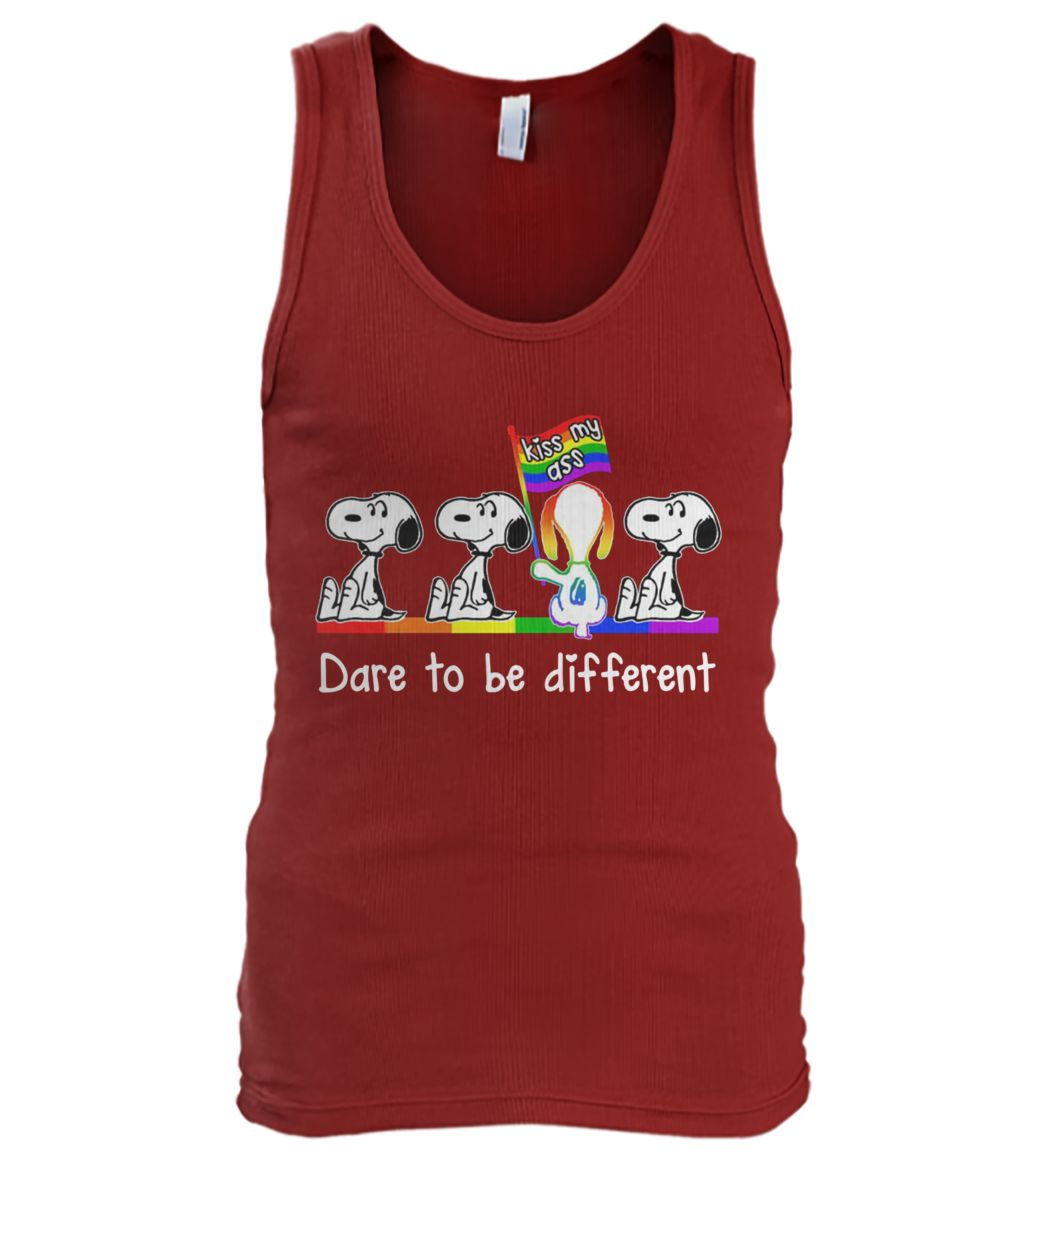 LGBT snoopy kiss my ass dare to be different men's tank top